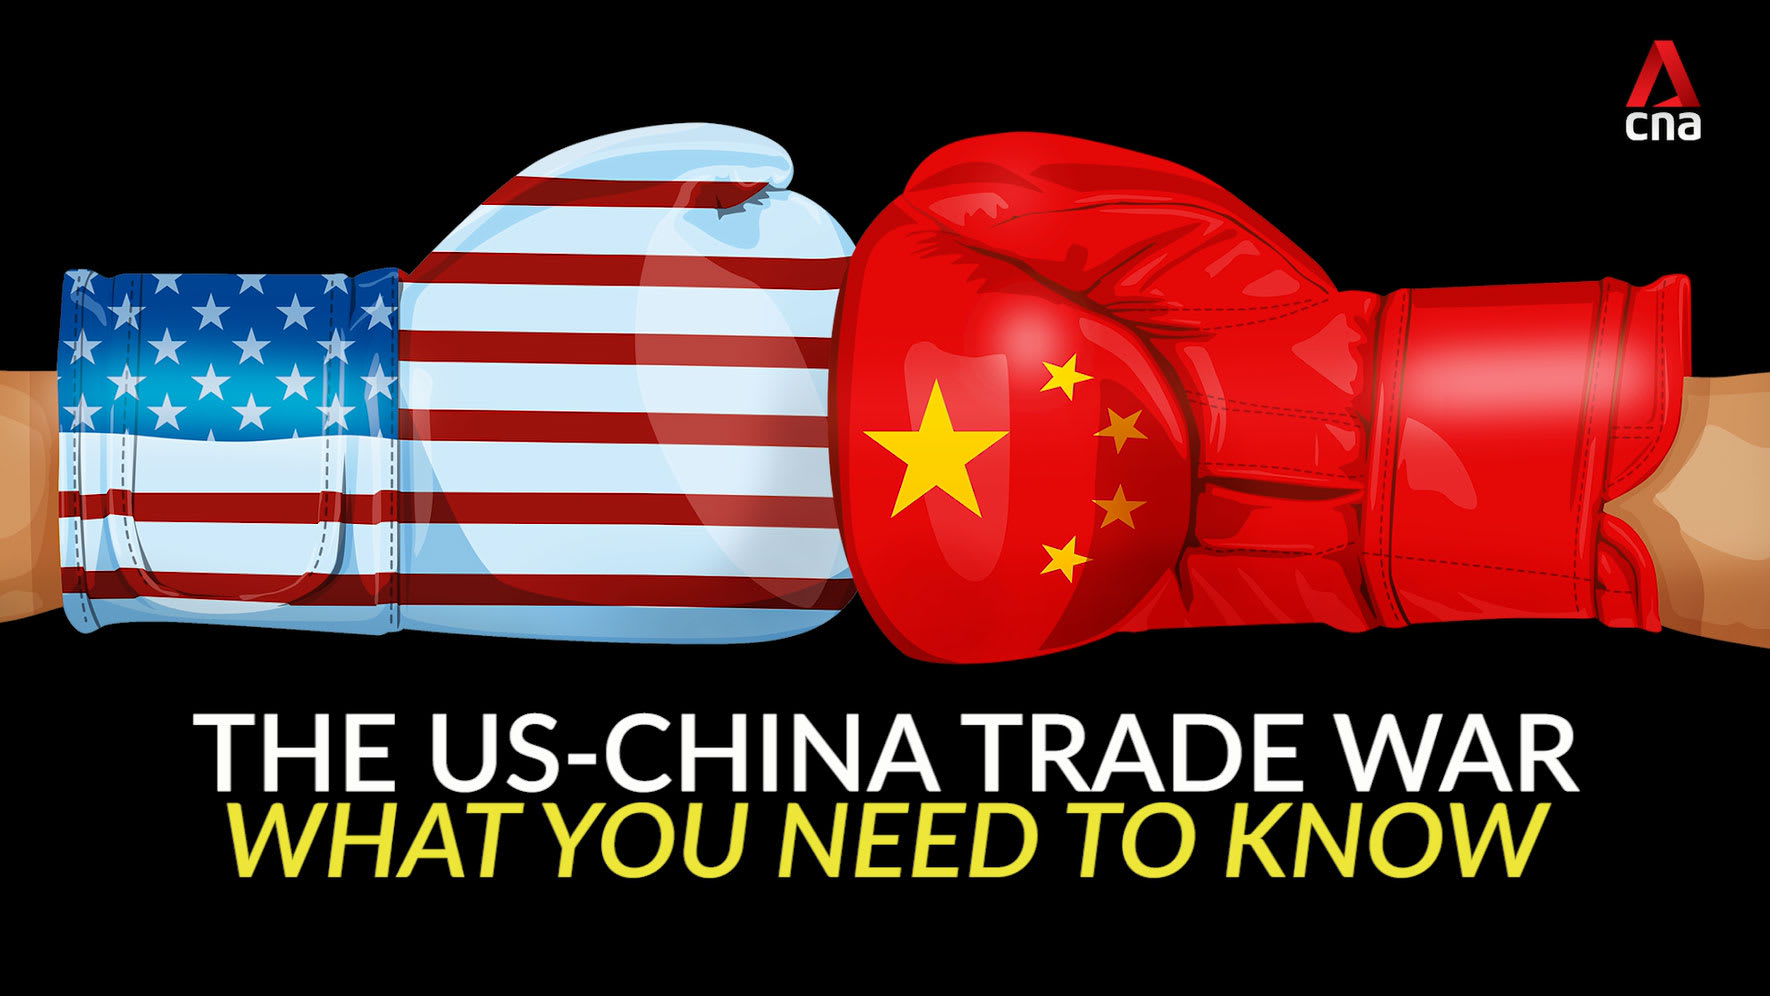 US-China trade war: What you need to know